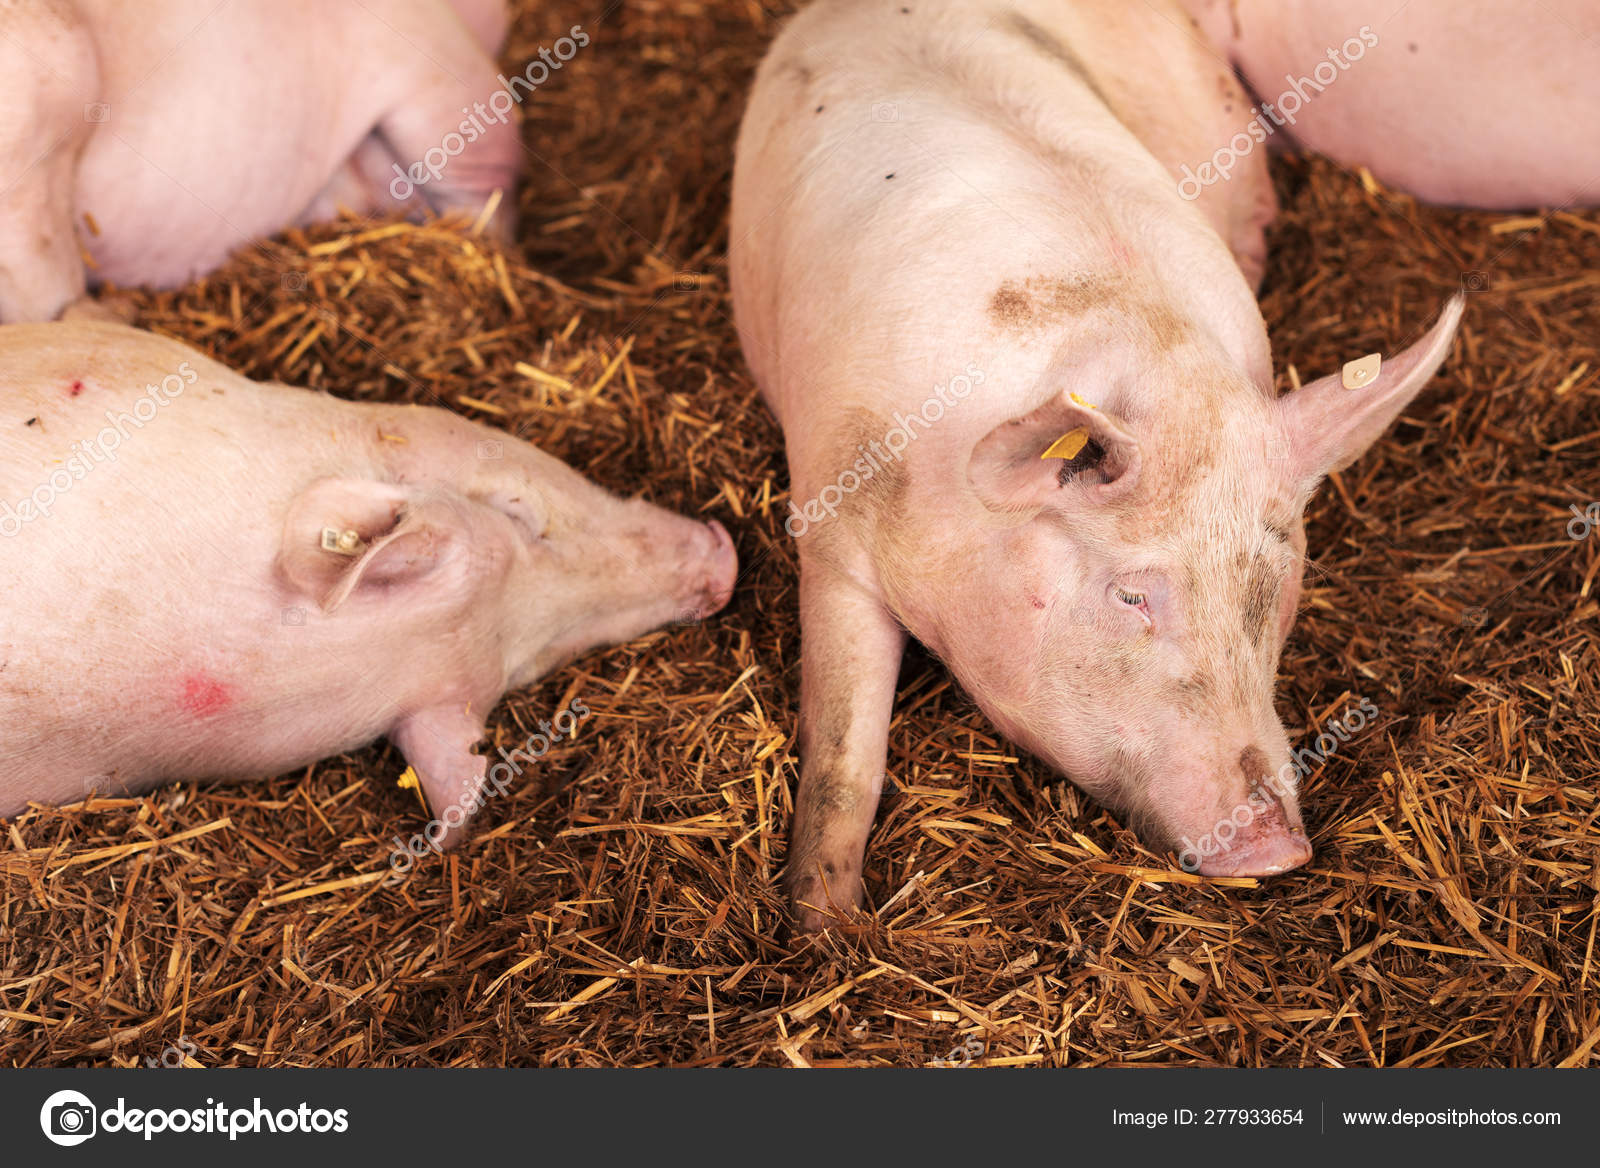 American Yorkshire Female Pigs In Pen Stock Photo